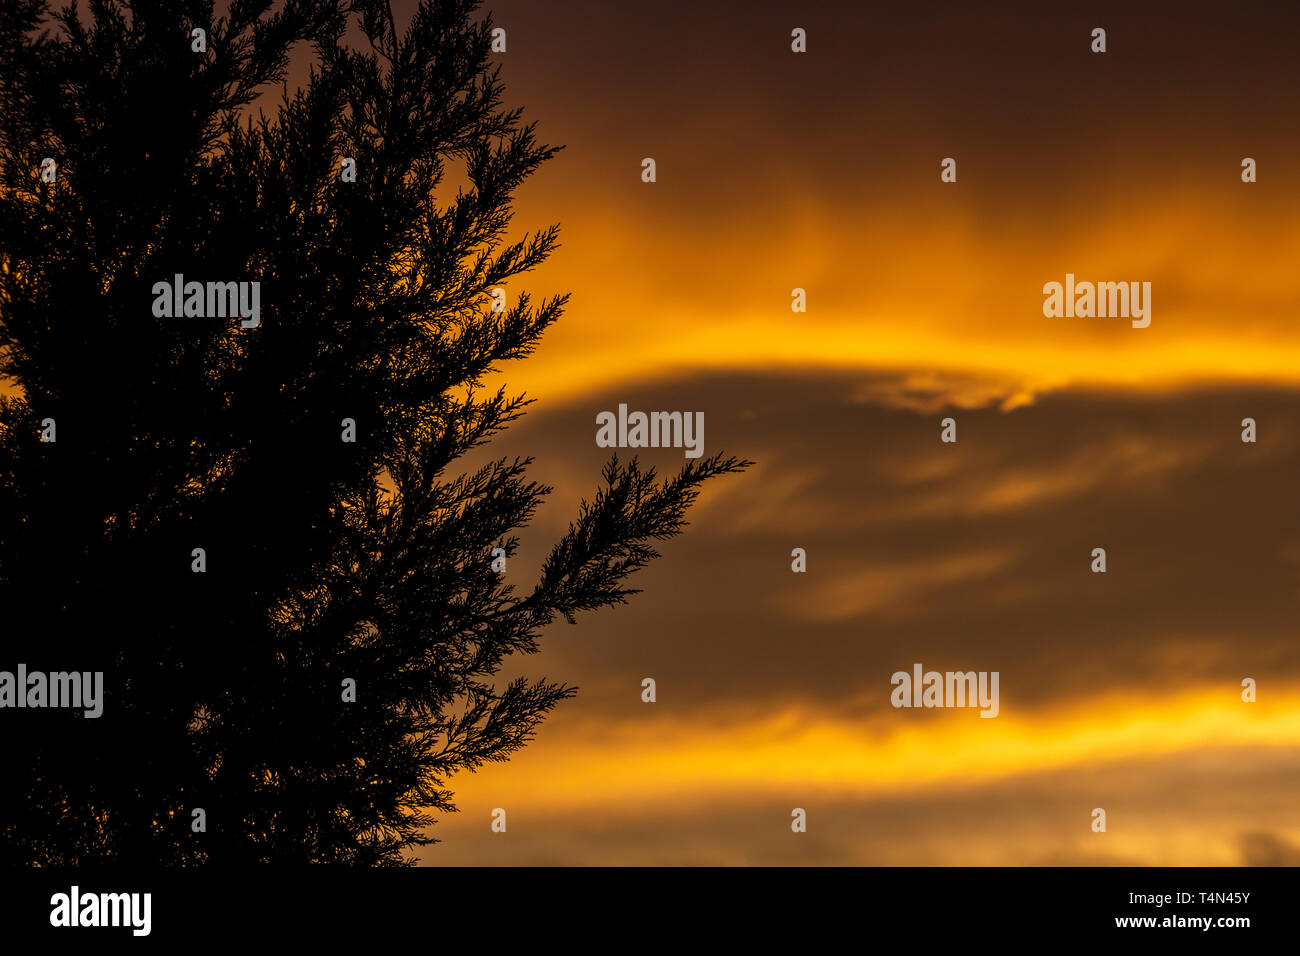 Beautiful winter sunset over conifer hedge branches in Krum, Southern Bulgaria - Stock Image